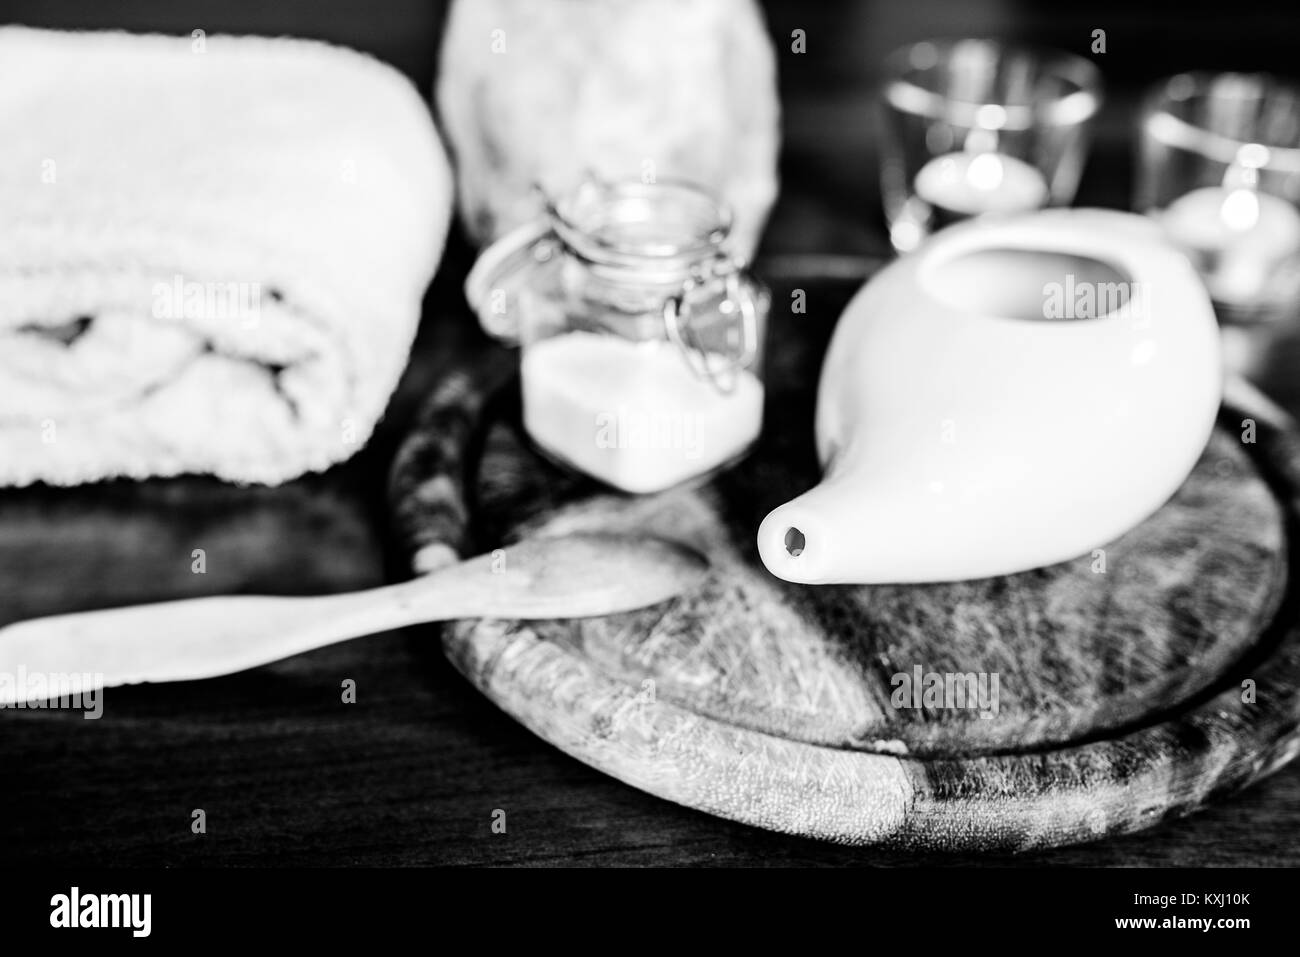 neti pot, ayurvedic tools for cleaning nose with water and salt, view from top, wooden table and board on background - Stock Image